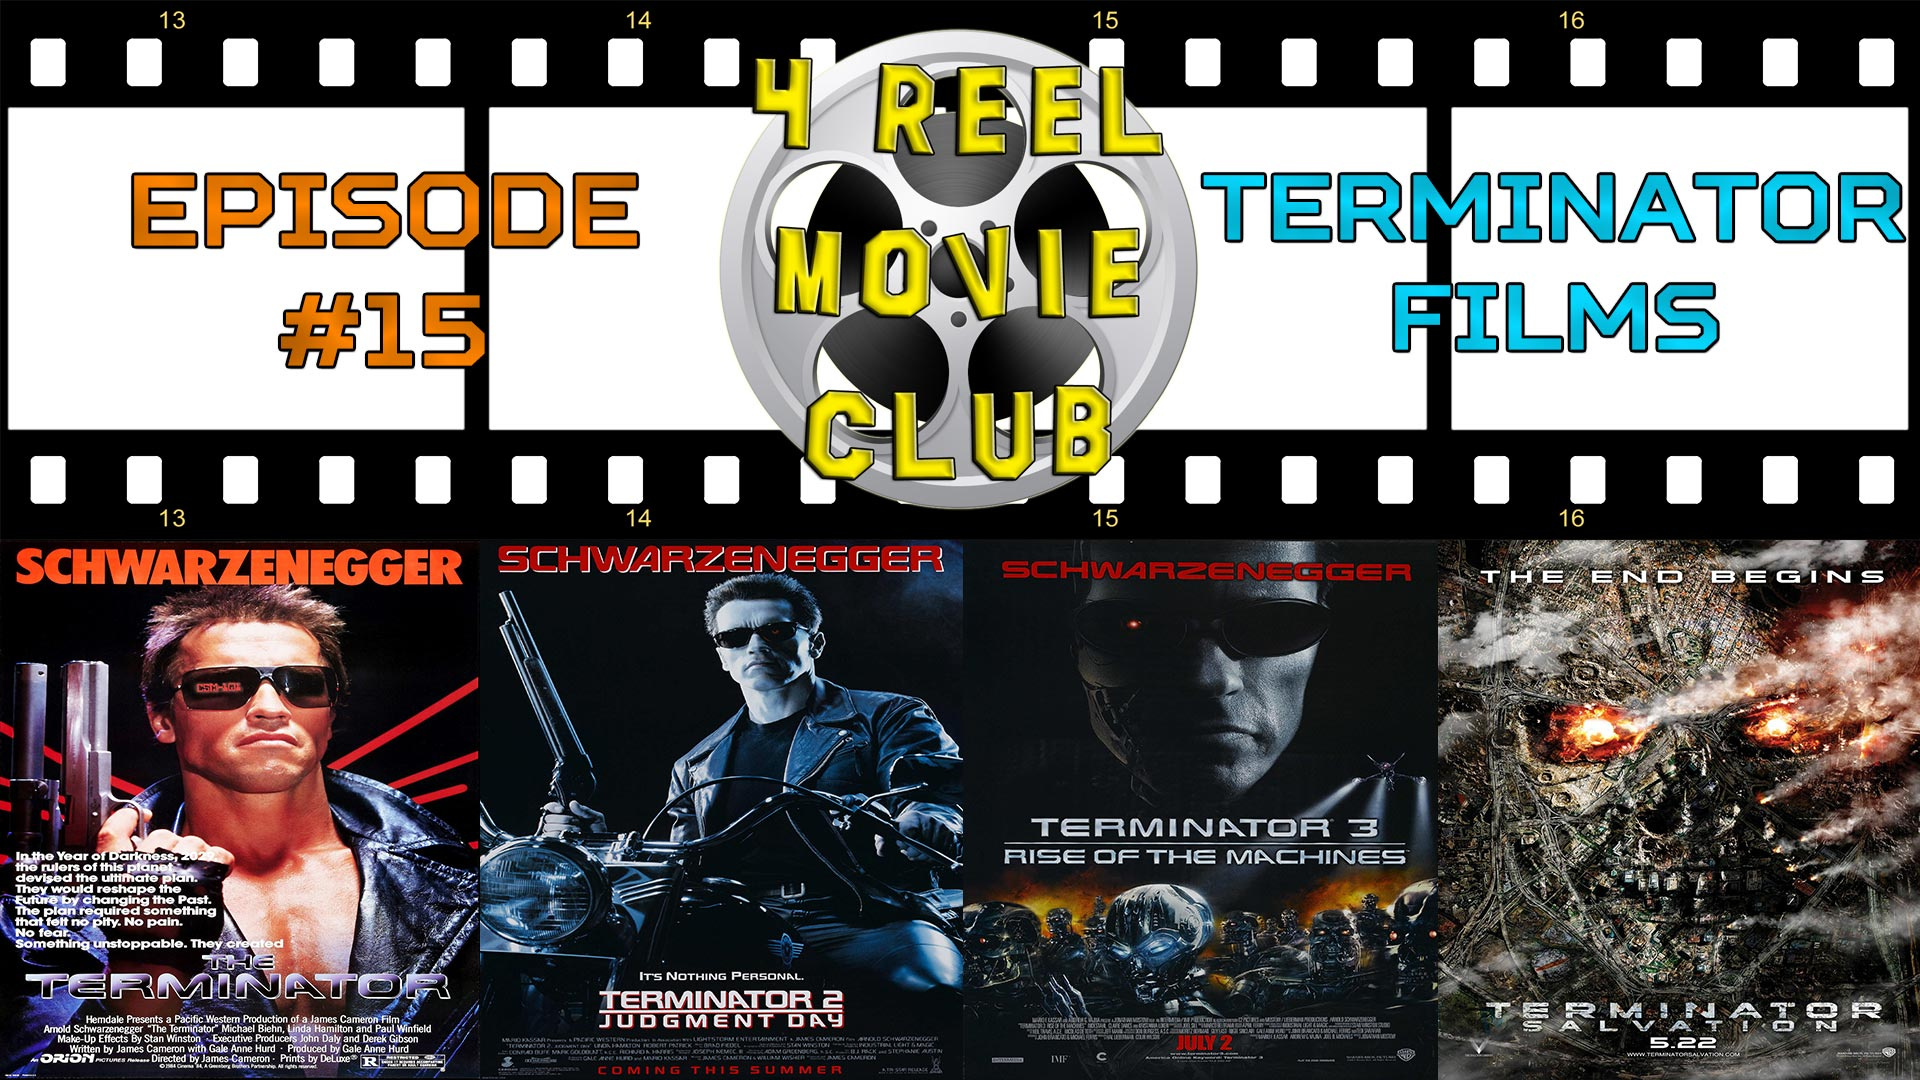 The Terminator, Terminator 2: Judgment Day, Terminator 3: Rise of the Machines, Terminator Salvation